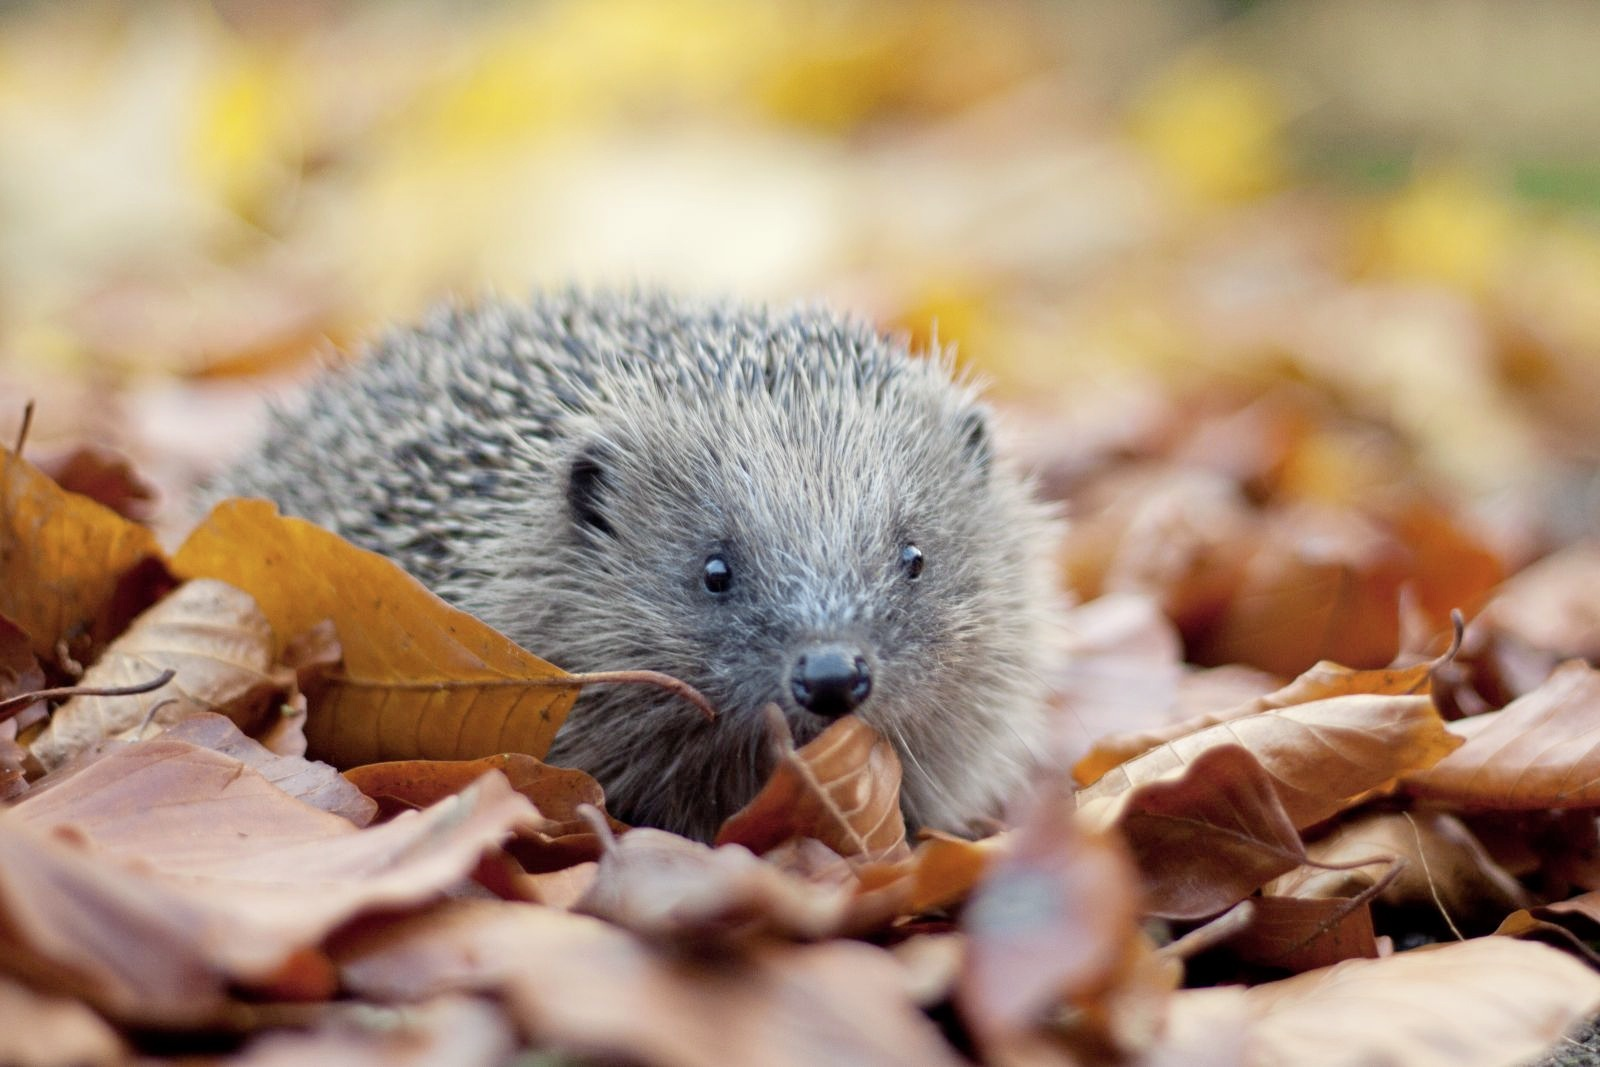 Rural hedgehogs are in decline